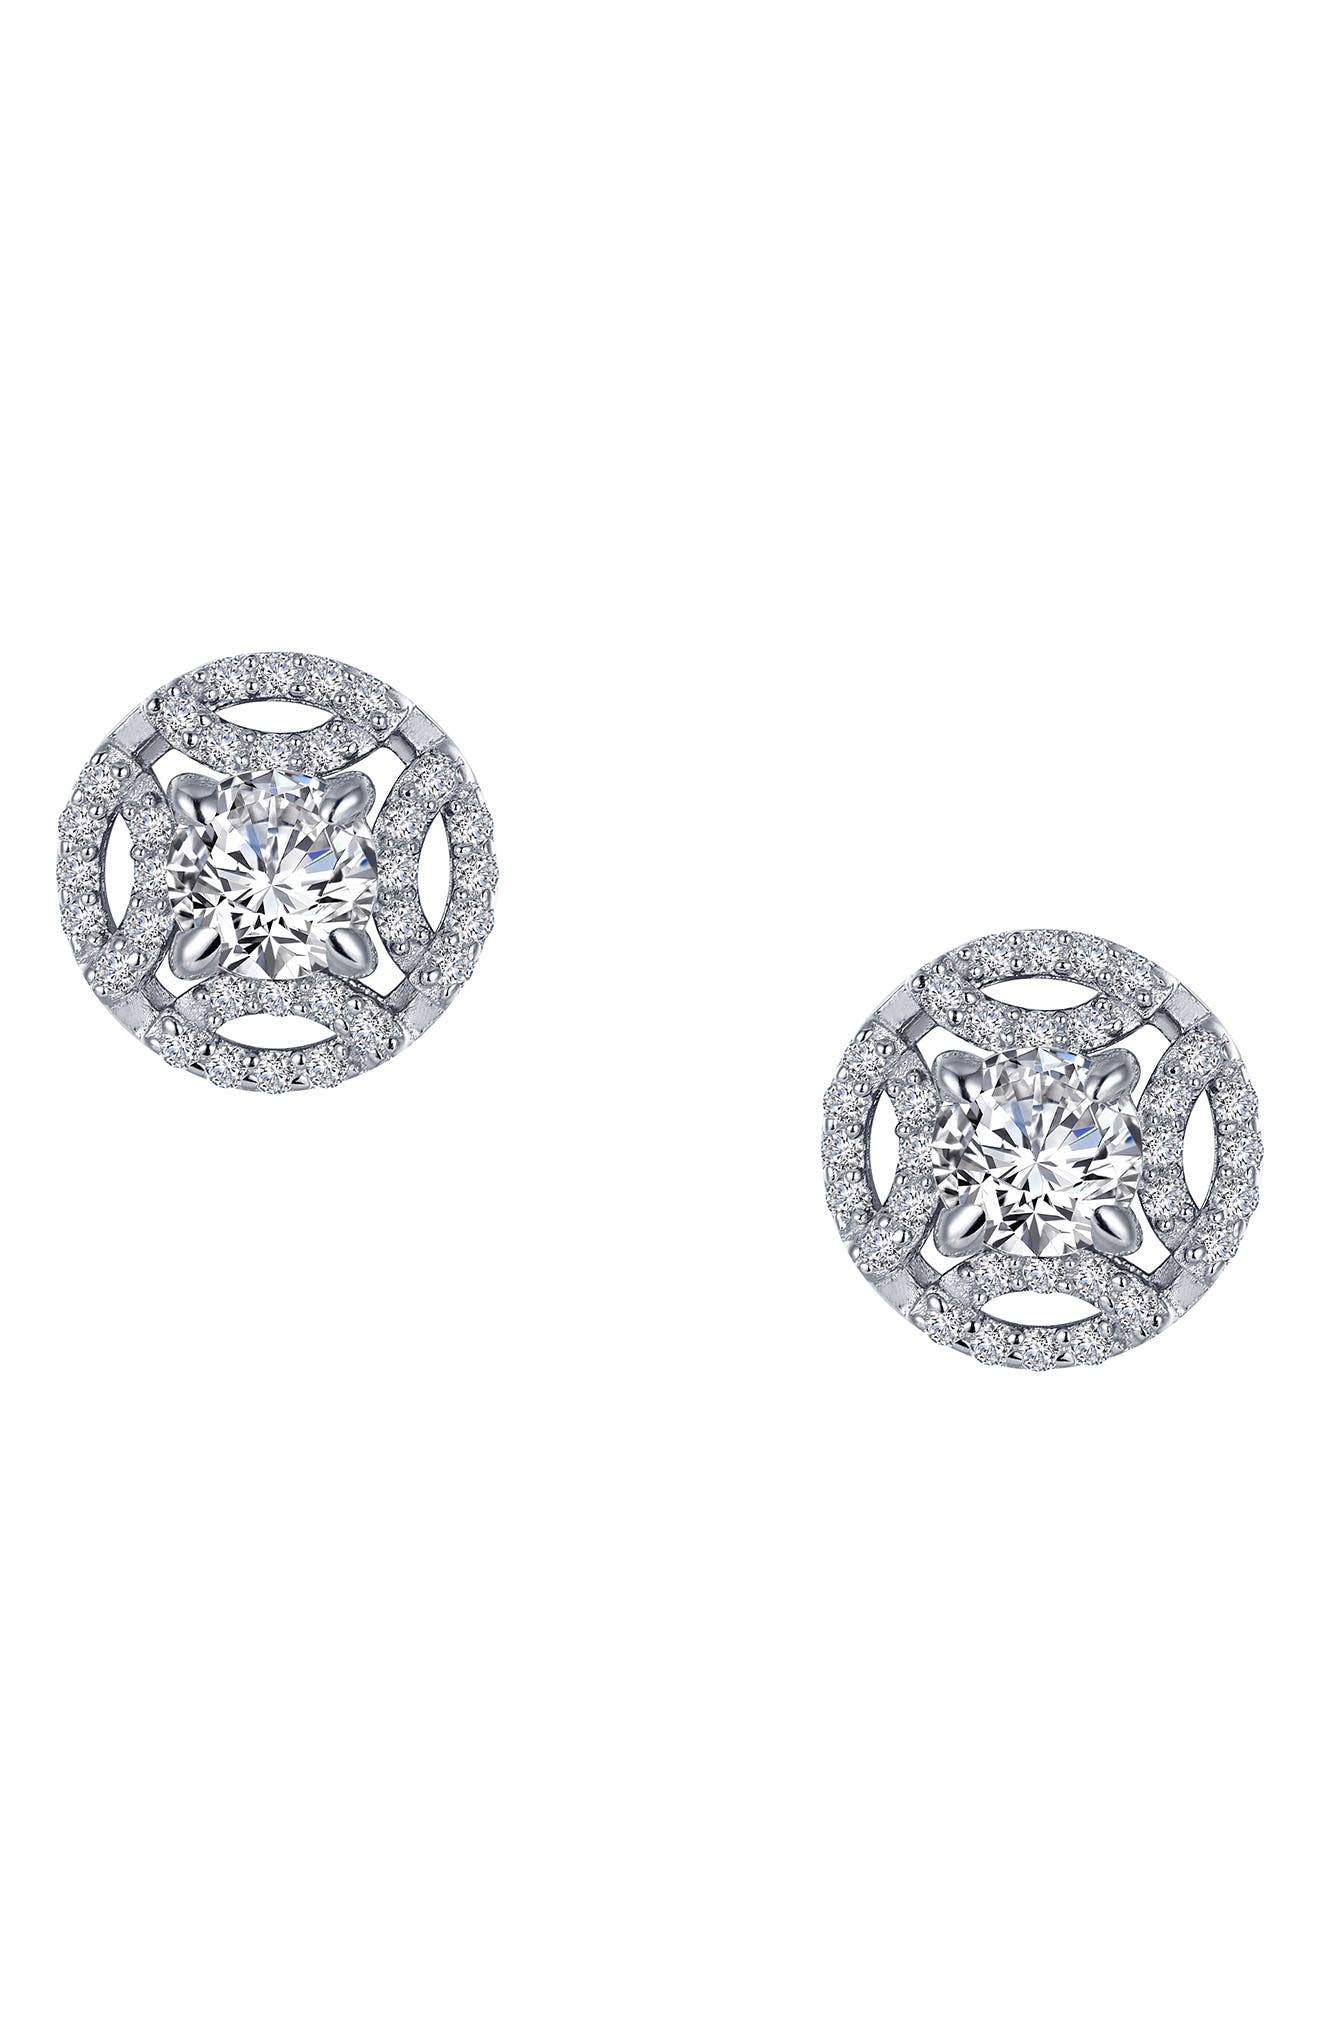 These stud earrings were inspired by vintage jewelry, with a button design centered by a simulated diamond and illuminated with curves of pave sparkle. Style Name: Lafonn Simulated Diamond Button Earrings. Style Number: 5827989. Available in stores.